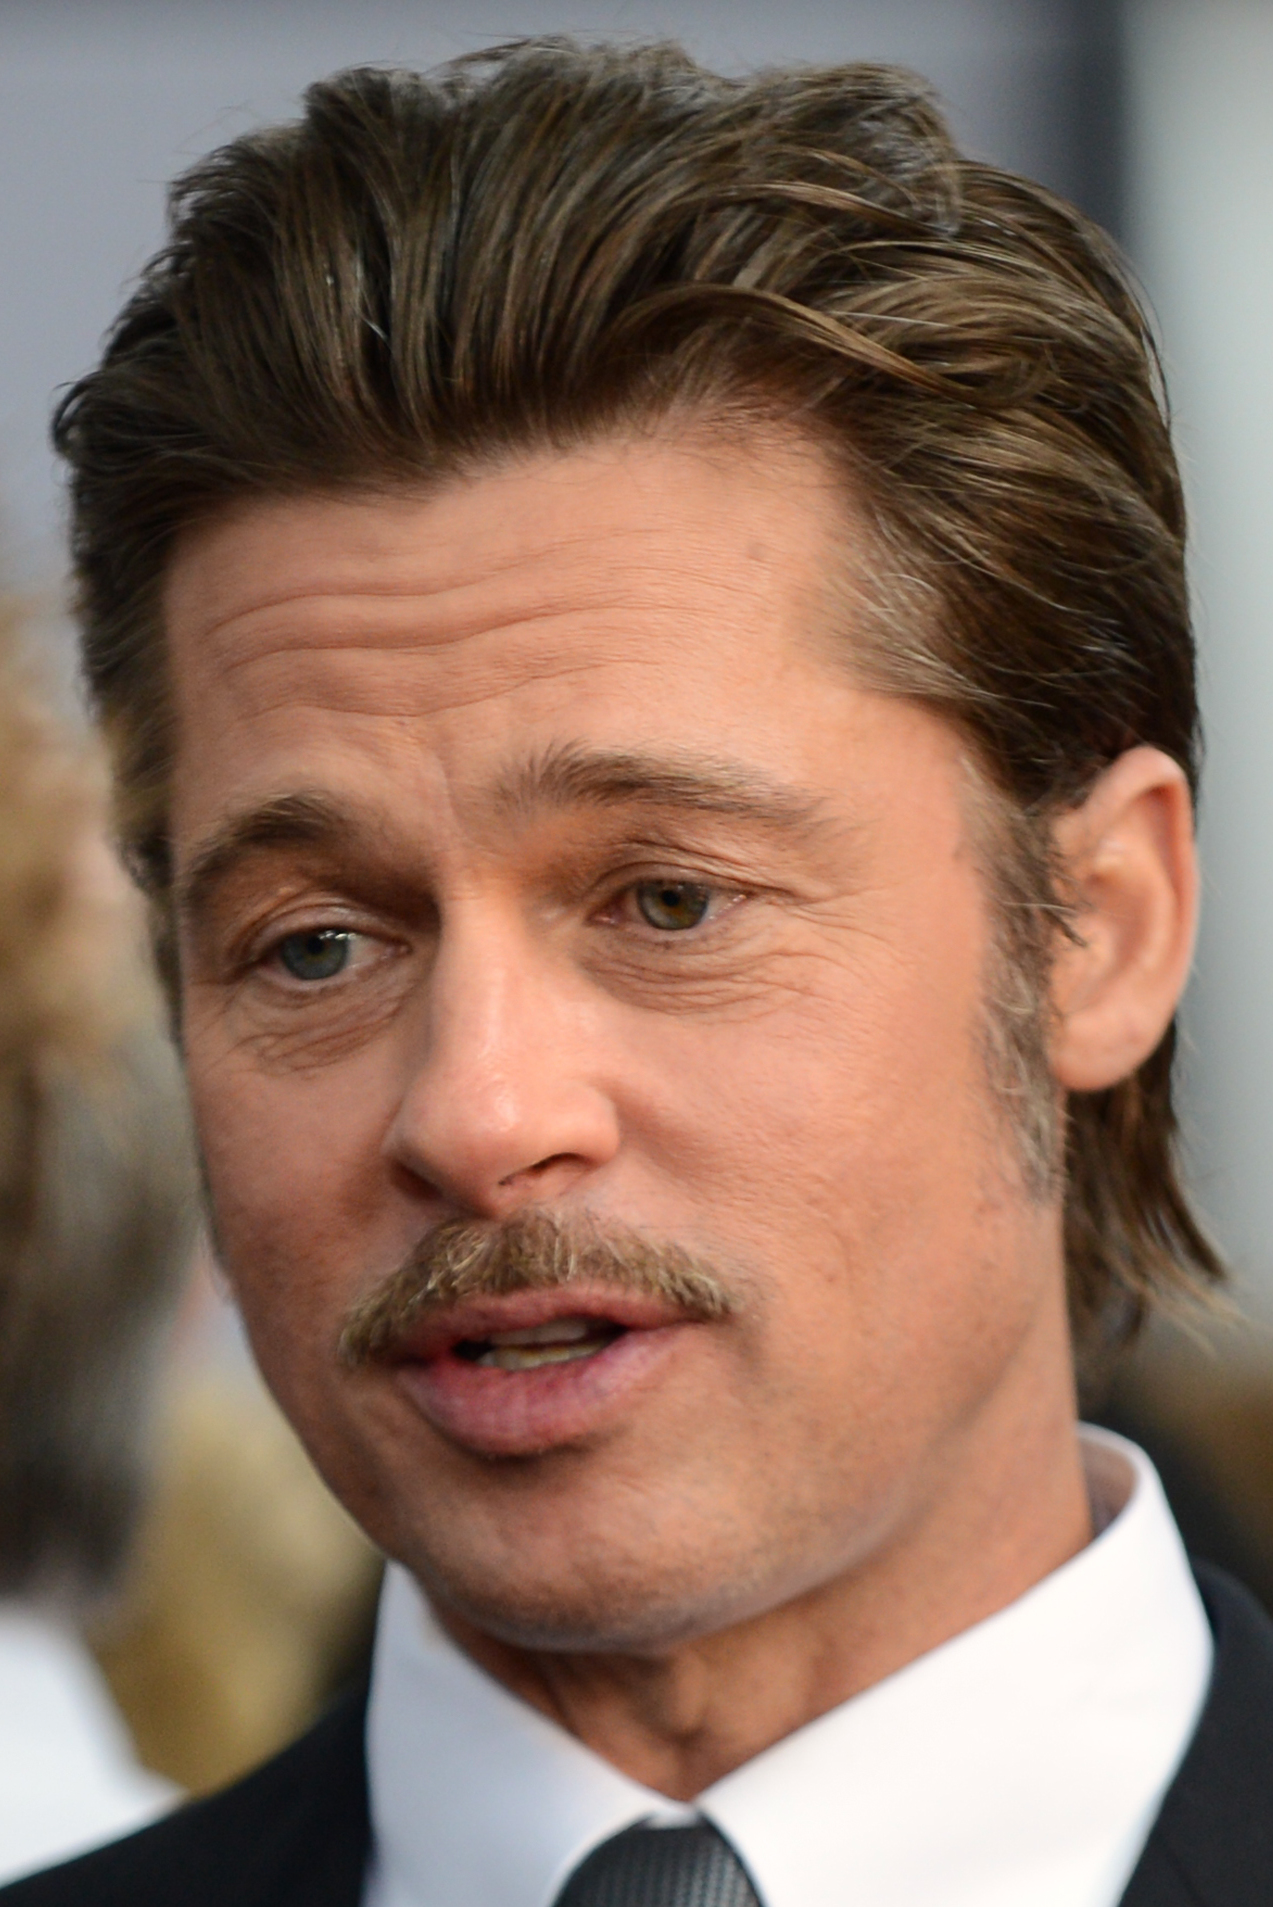 Brad Pitt Gives Kids Soda First Thing In Morning